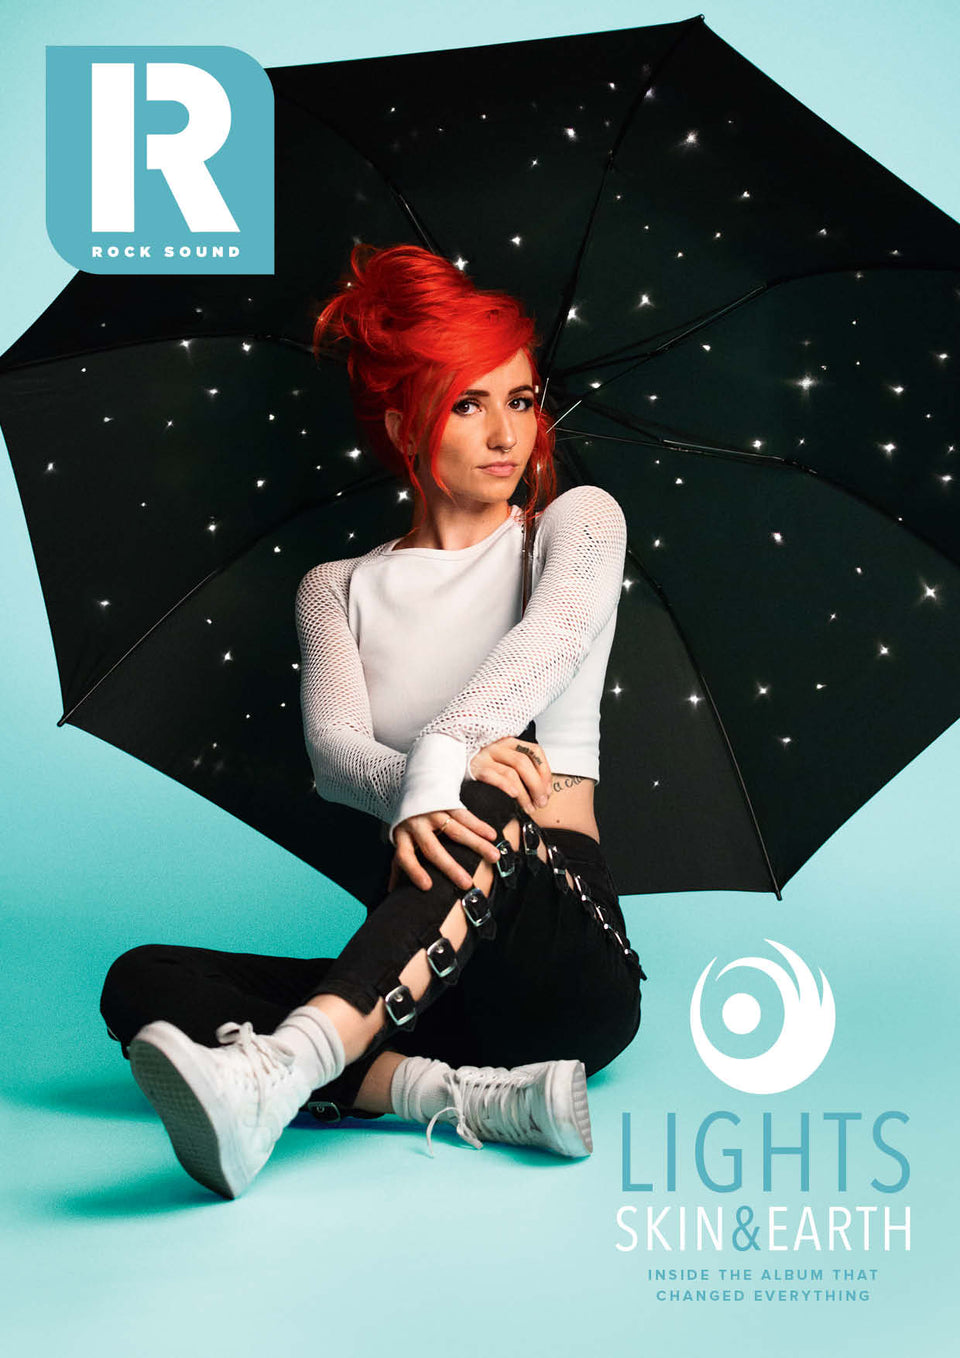 Rock Sound Issue 254 - Lights